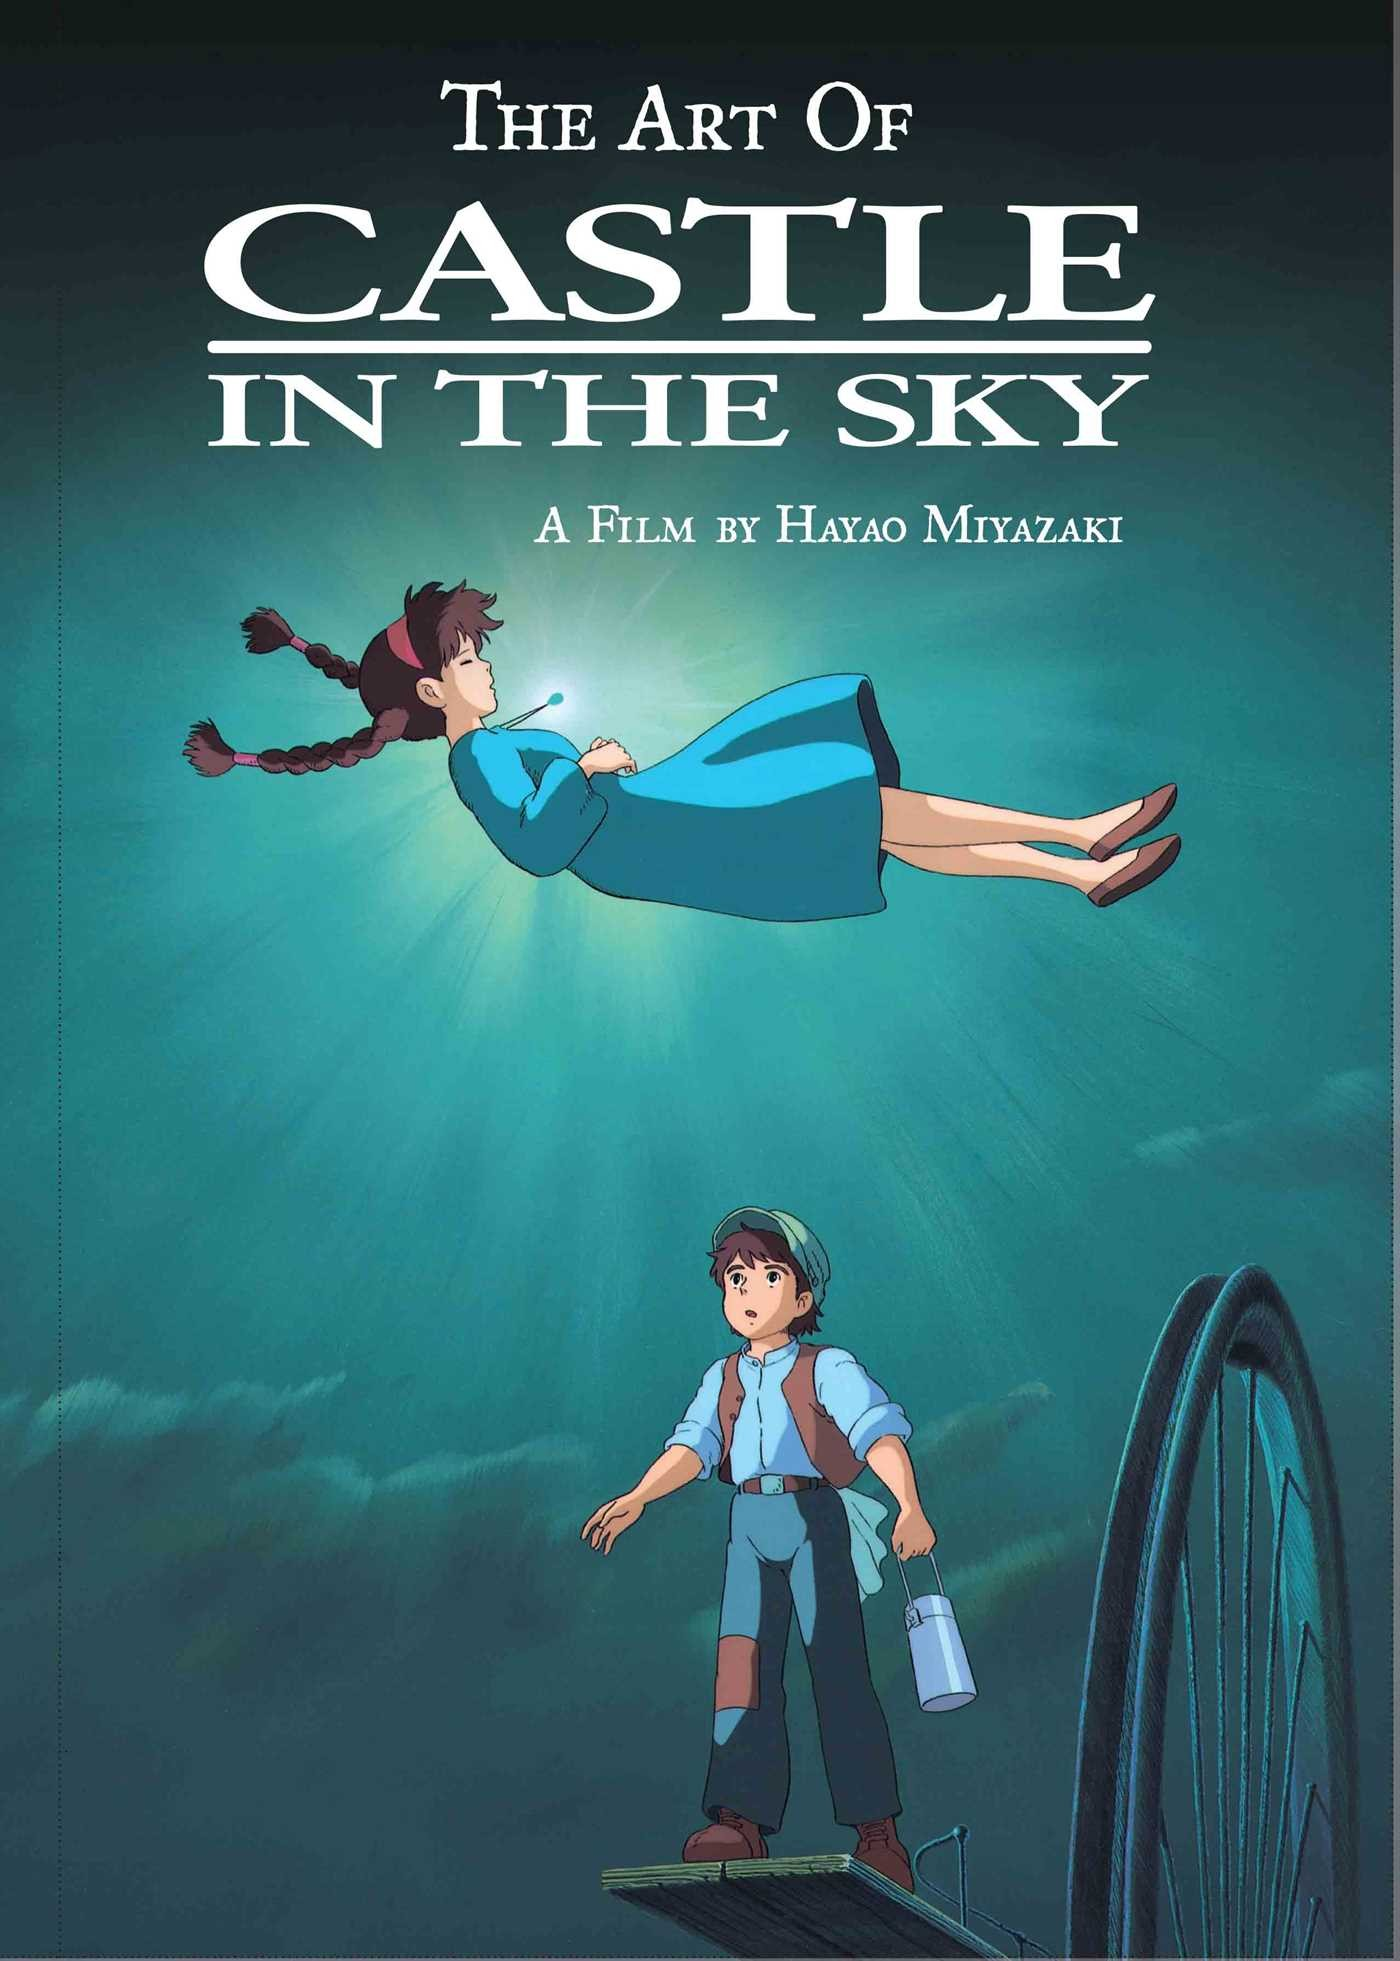 The Art of Castle in the Sky by Hayao Miyazaki